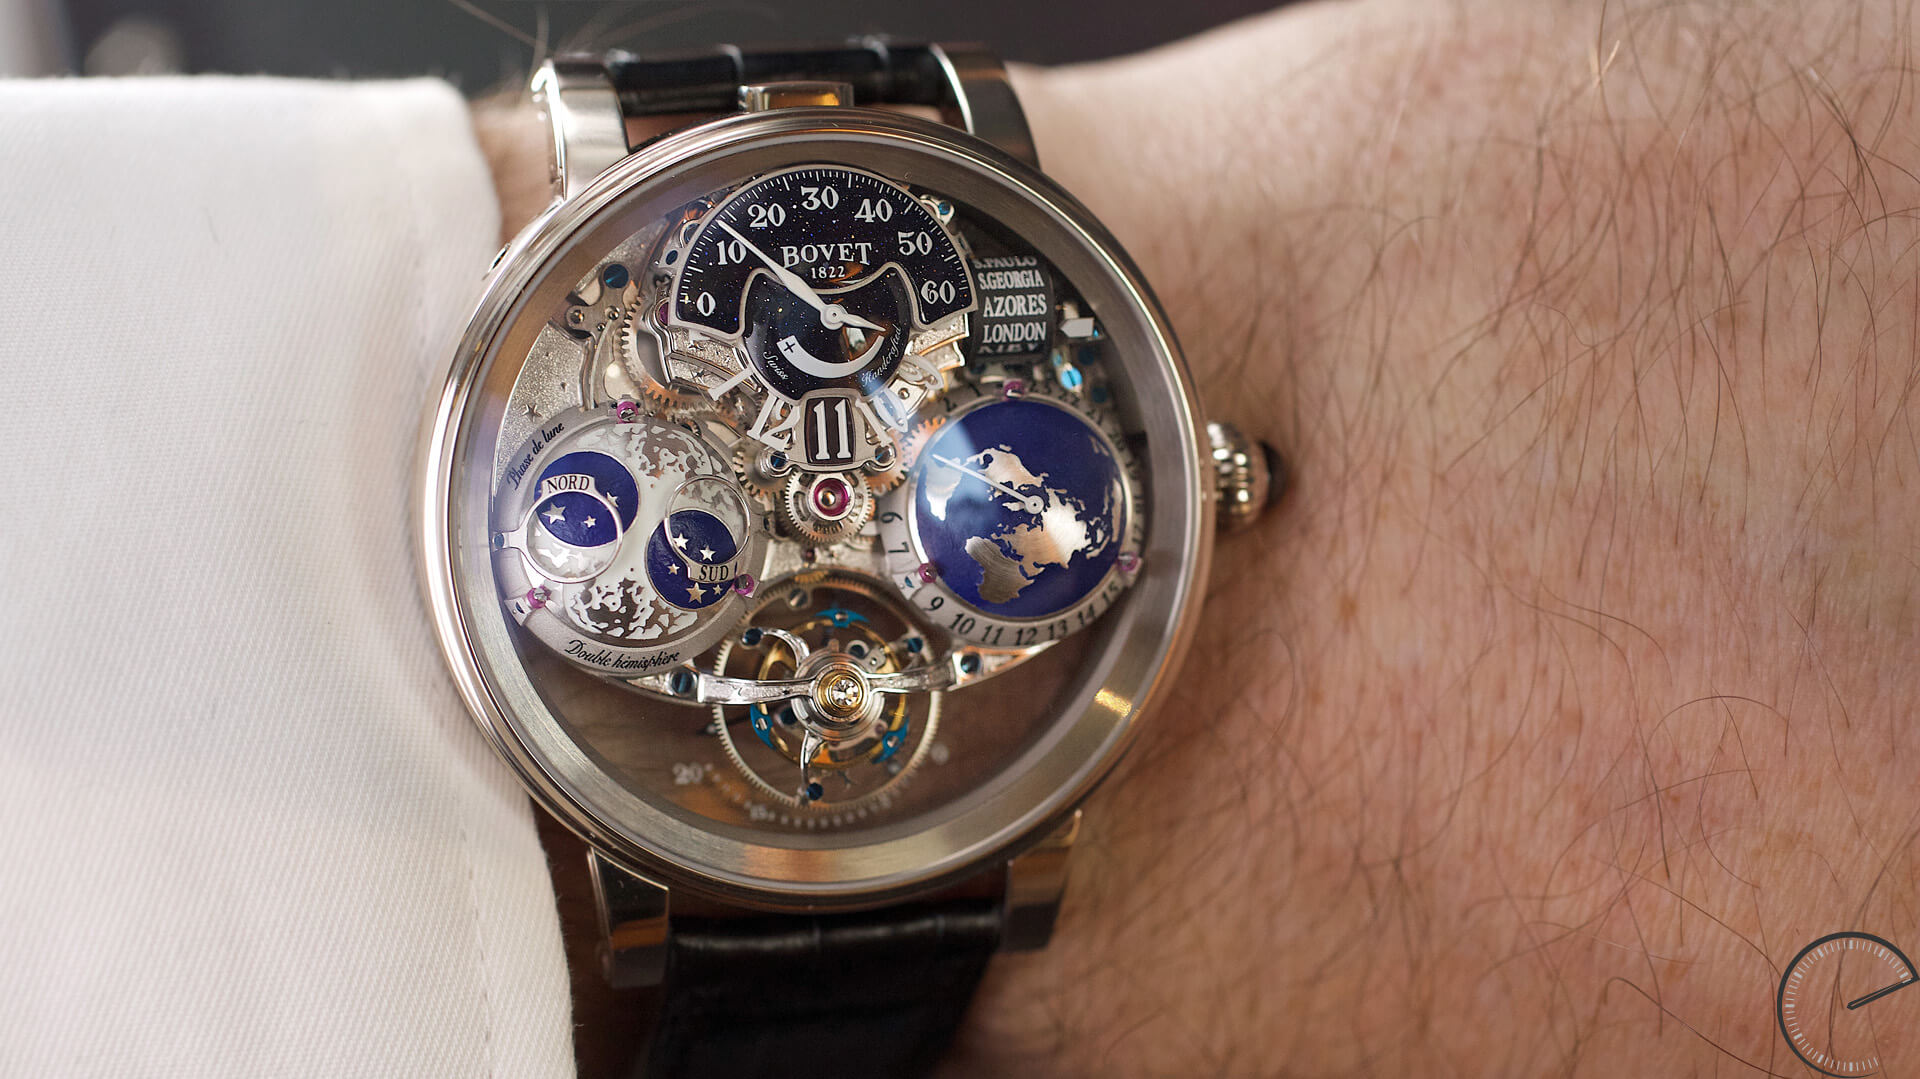 bovet watches complicated for artistic credit sites images unveils s architecture anthonydemarco three and com photo marc forbes gysin